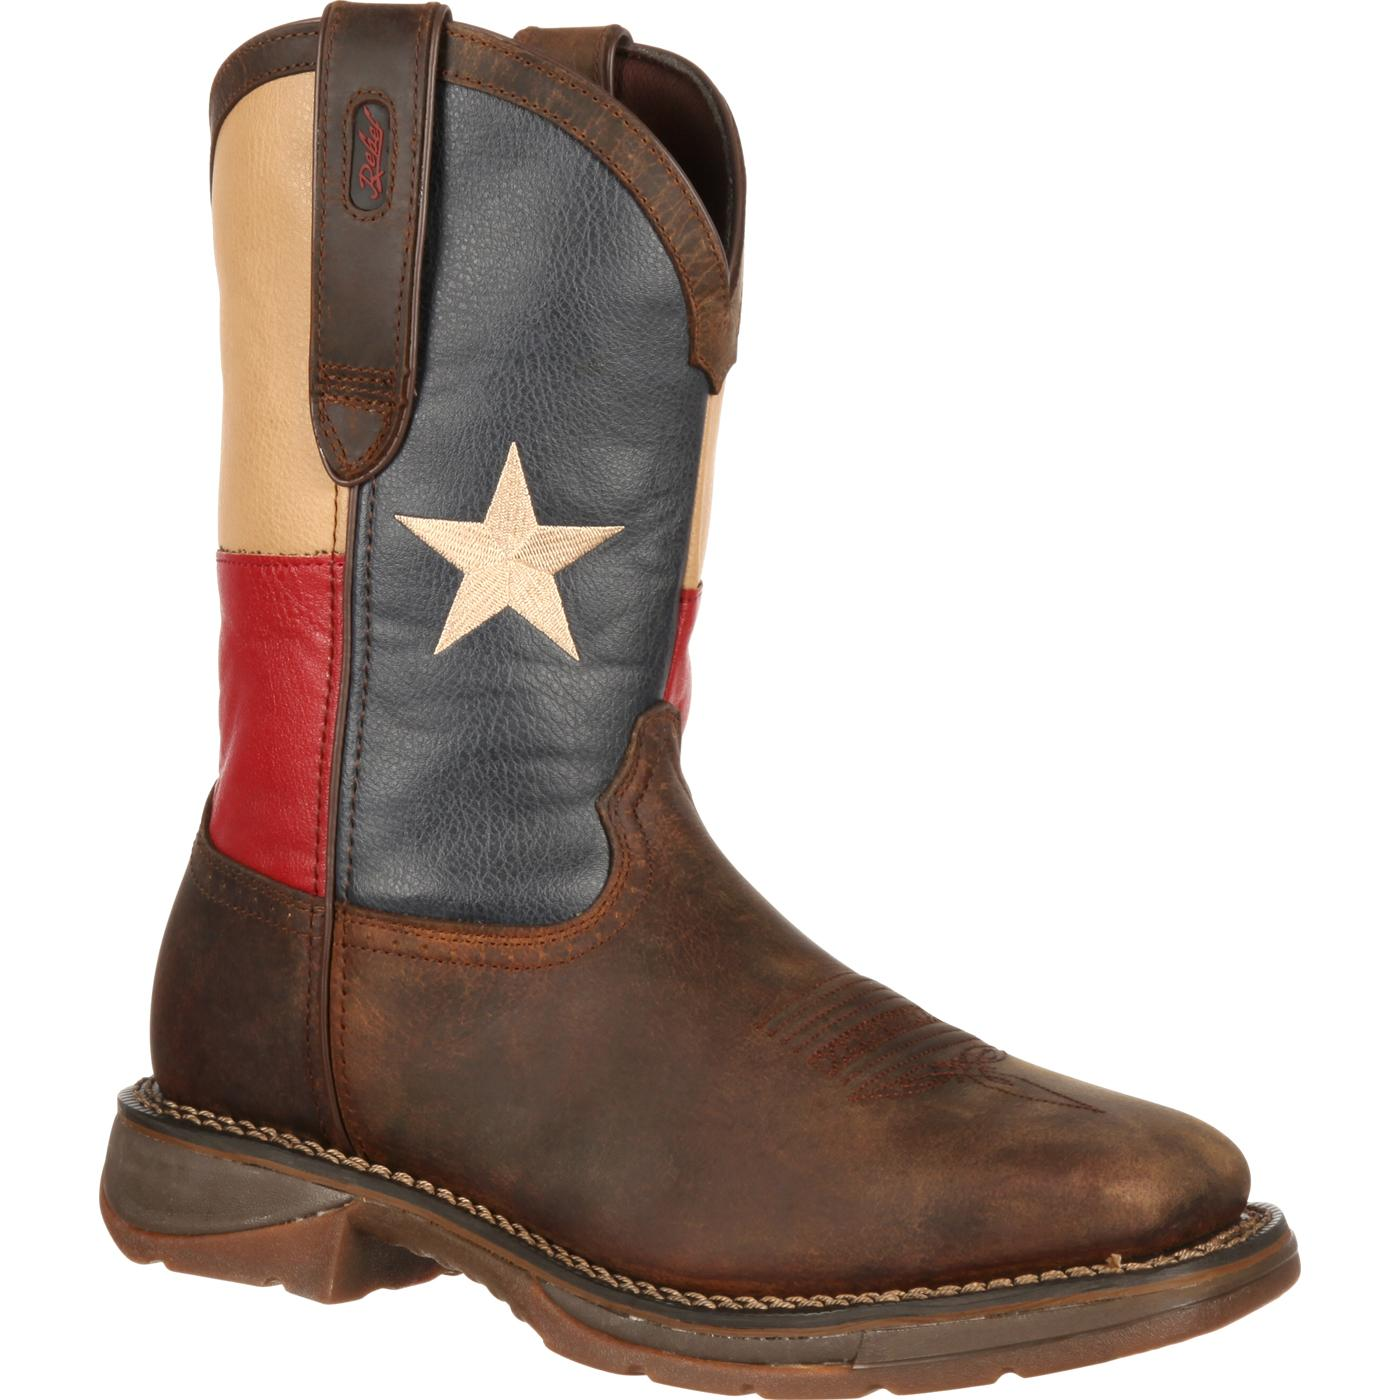 11 Quot Rebel By Durango Texas Flag Western Men S Steel Toe